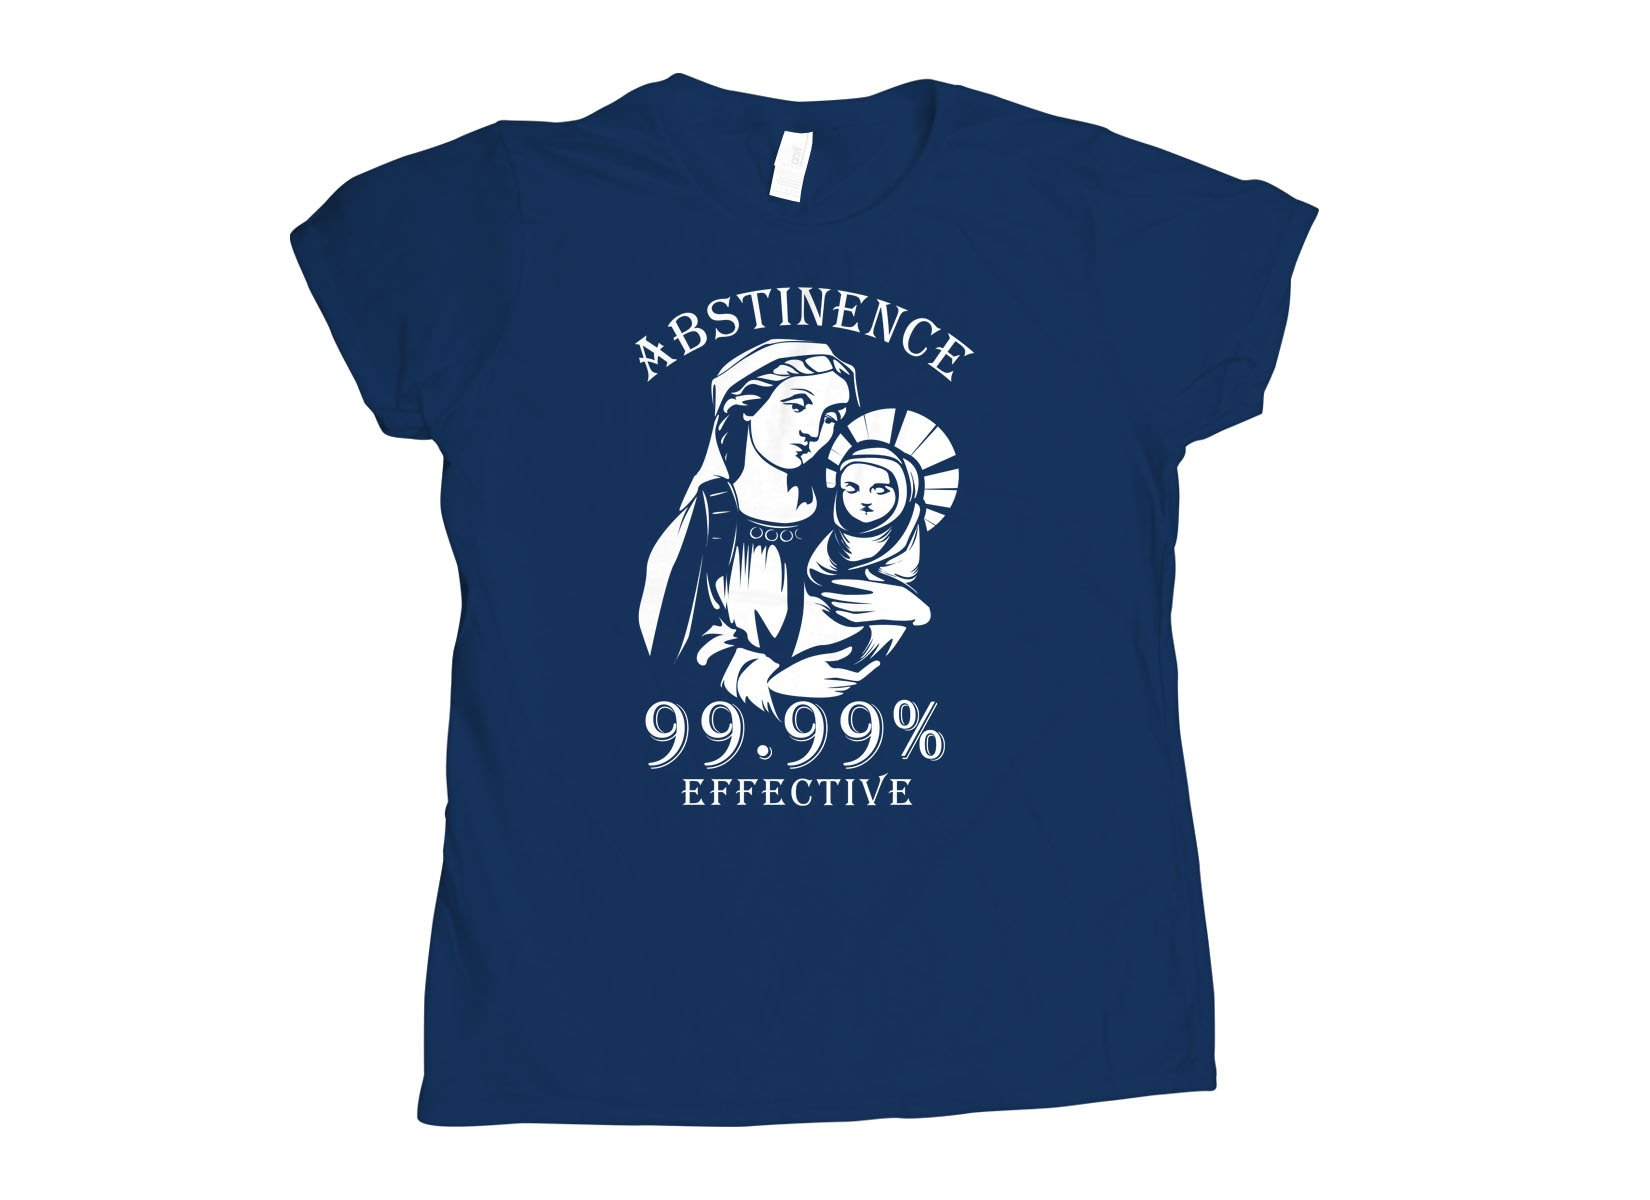 Abstinence, 99.99% Effective on Womens T-Shirt